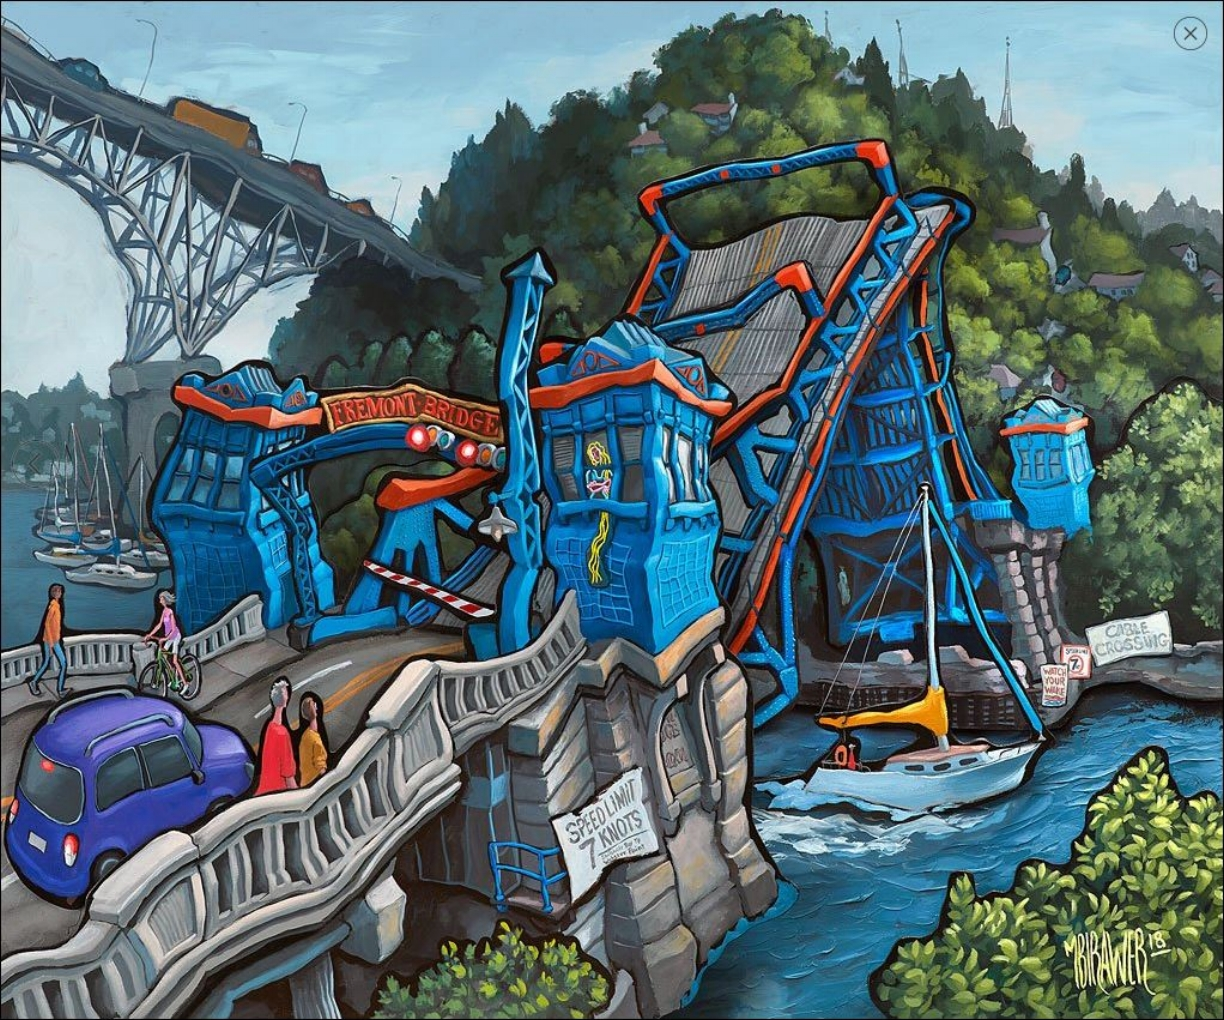 Fremont Bridge - Seattle#Acrylic on 3D wood#36 x 44 x 4 inches#$5,800